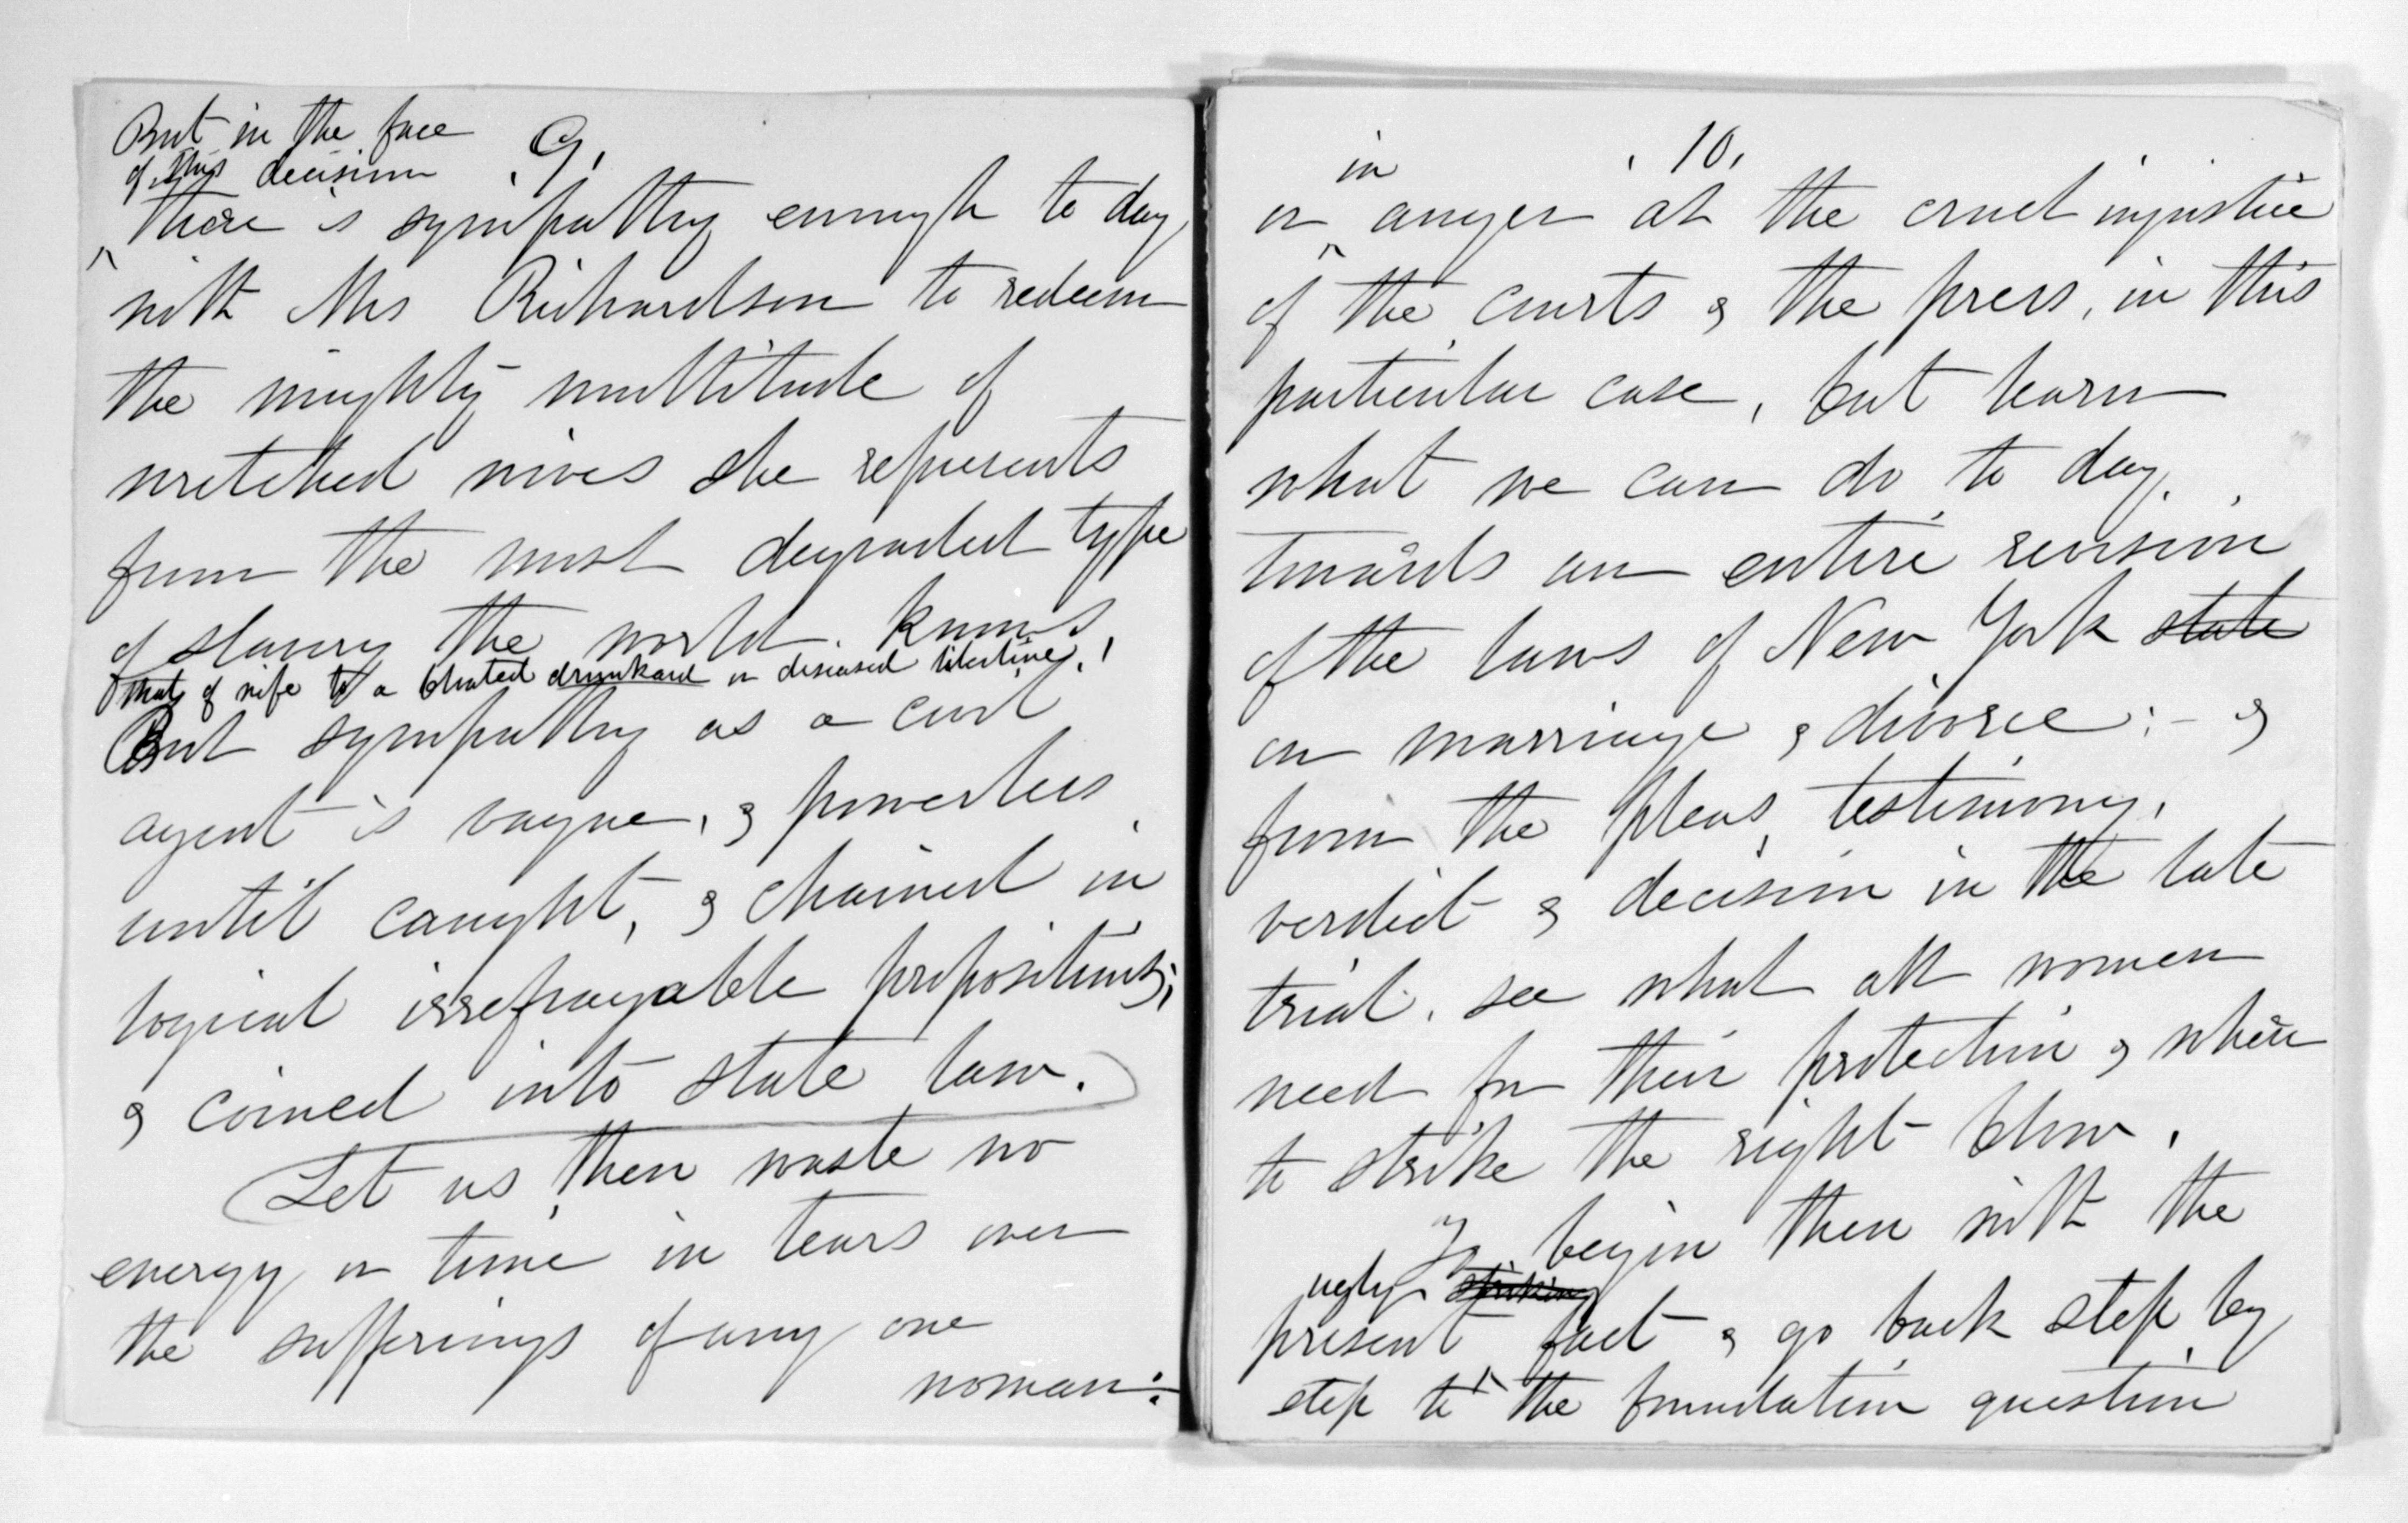 By the People Elizabeth Cady Stanton Papers: Speeches and